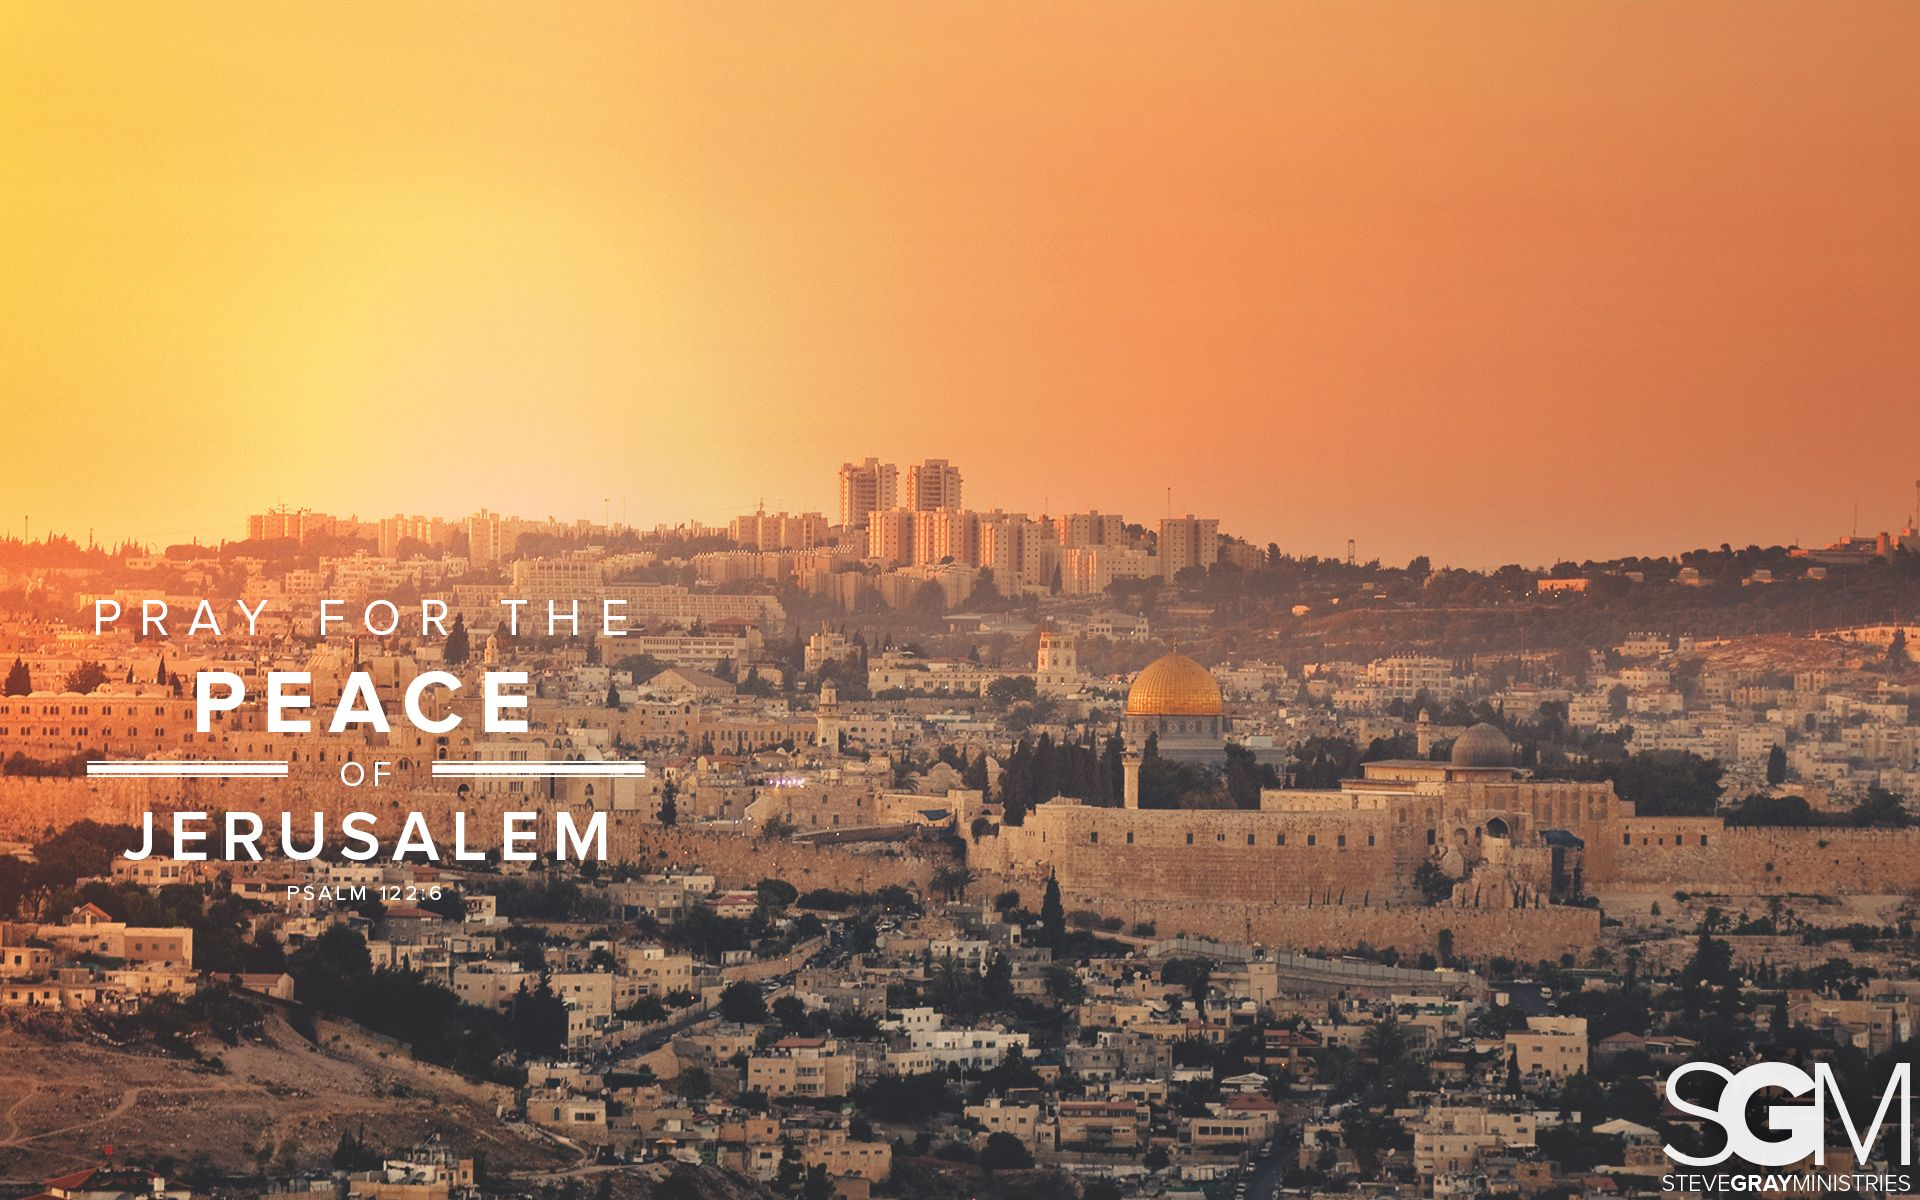 1920x1200 Ultra HD Jerusalem Wallpapers #6CG51H4 | WallpapersExpert.com